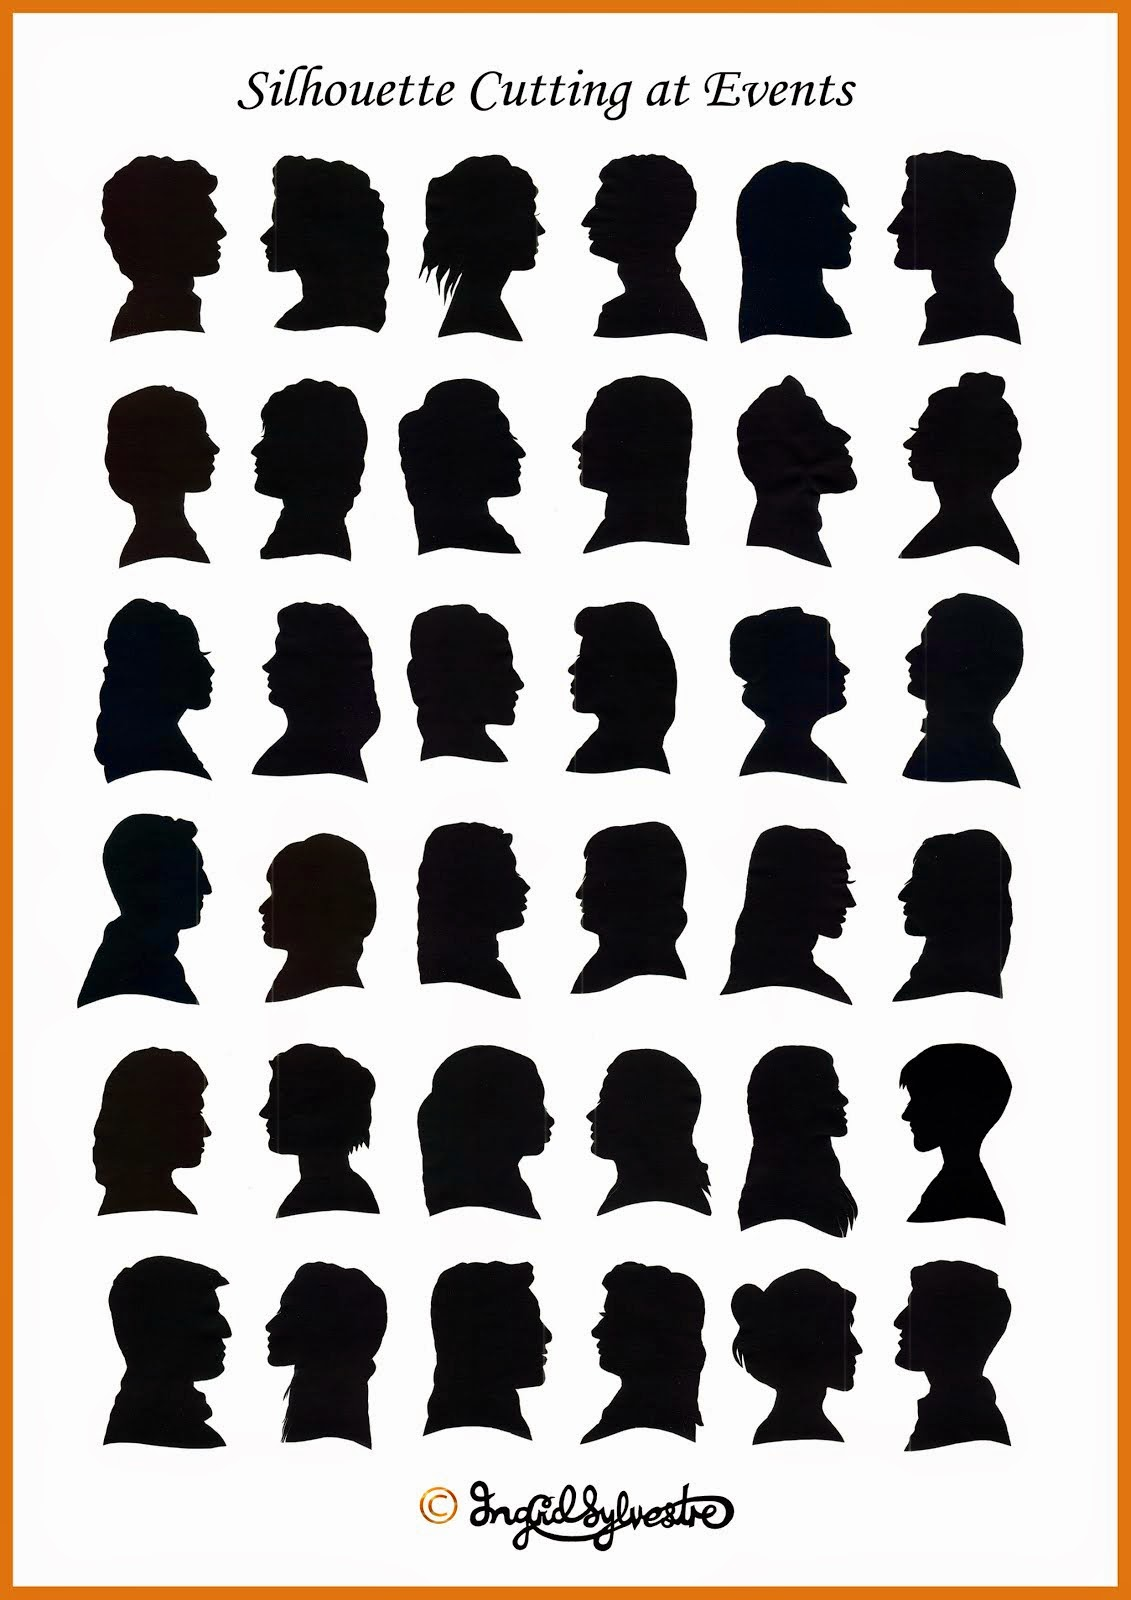 Silhouettes cut by Ingrid Sylvestre at weddings, parties, proms, corporate events